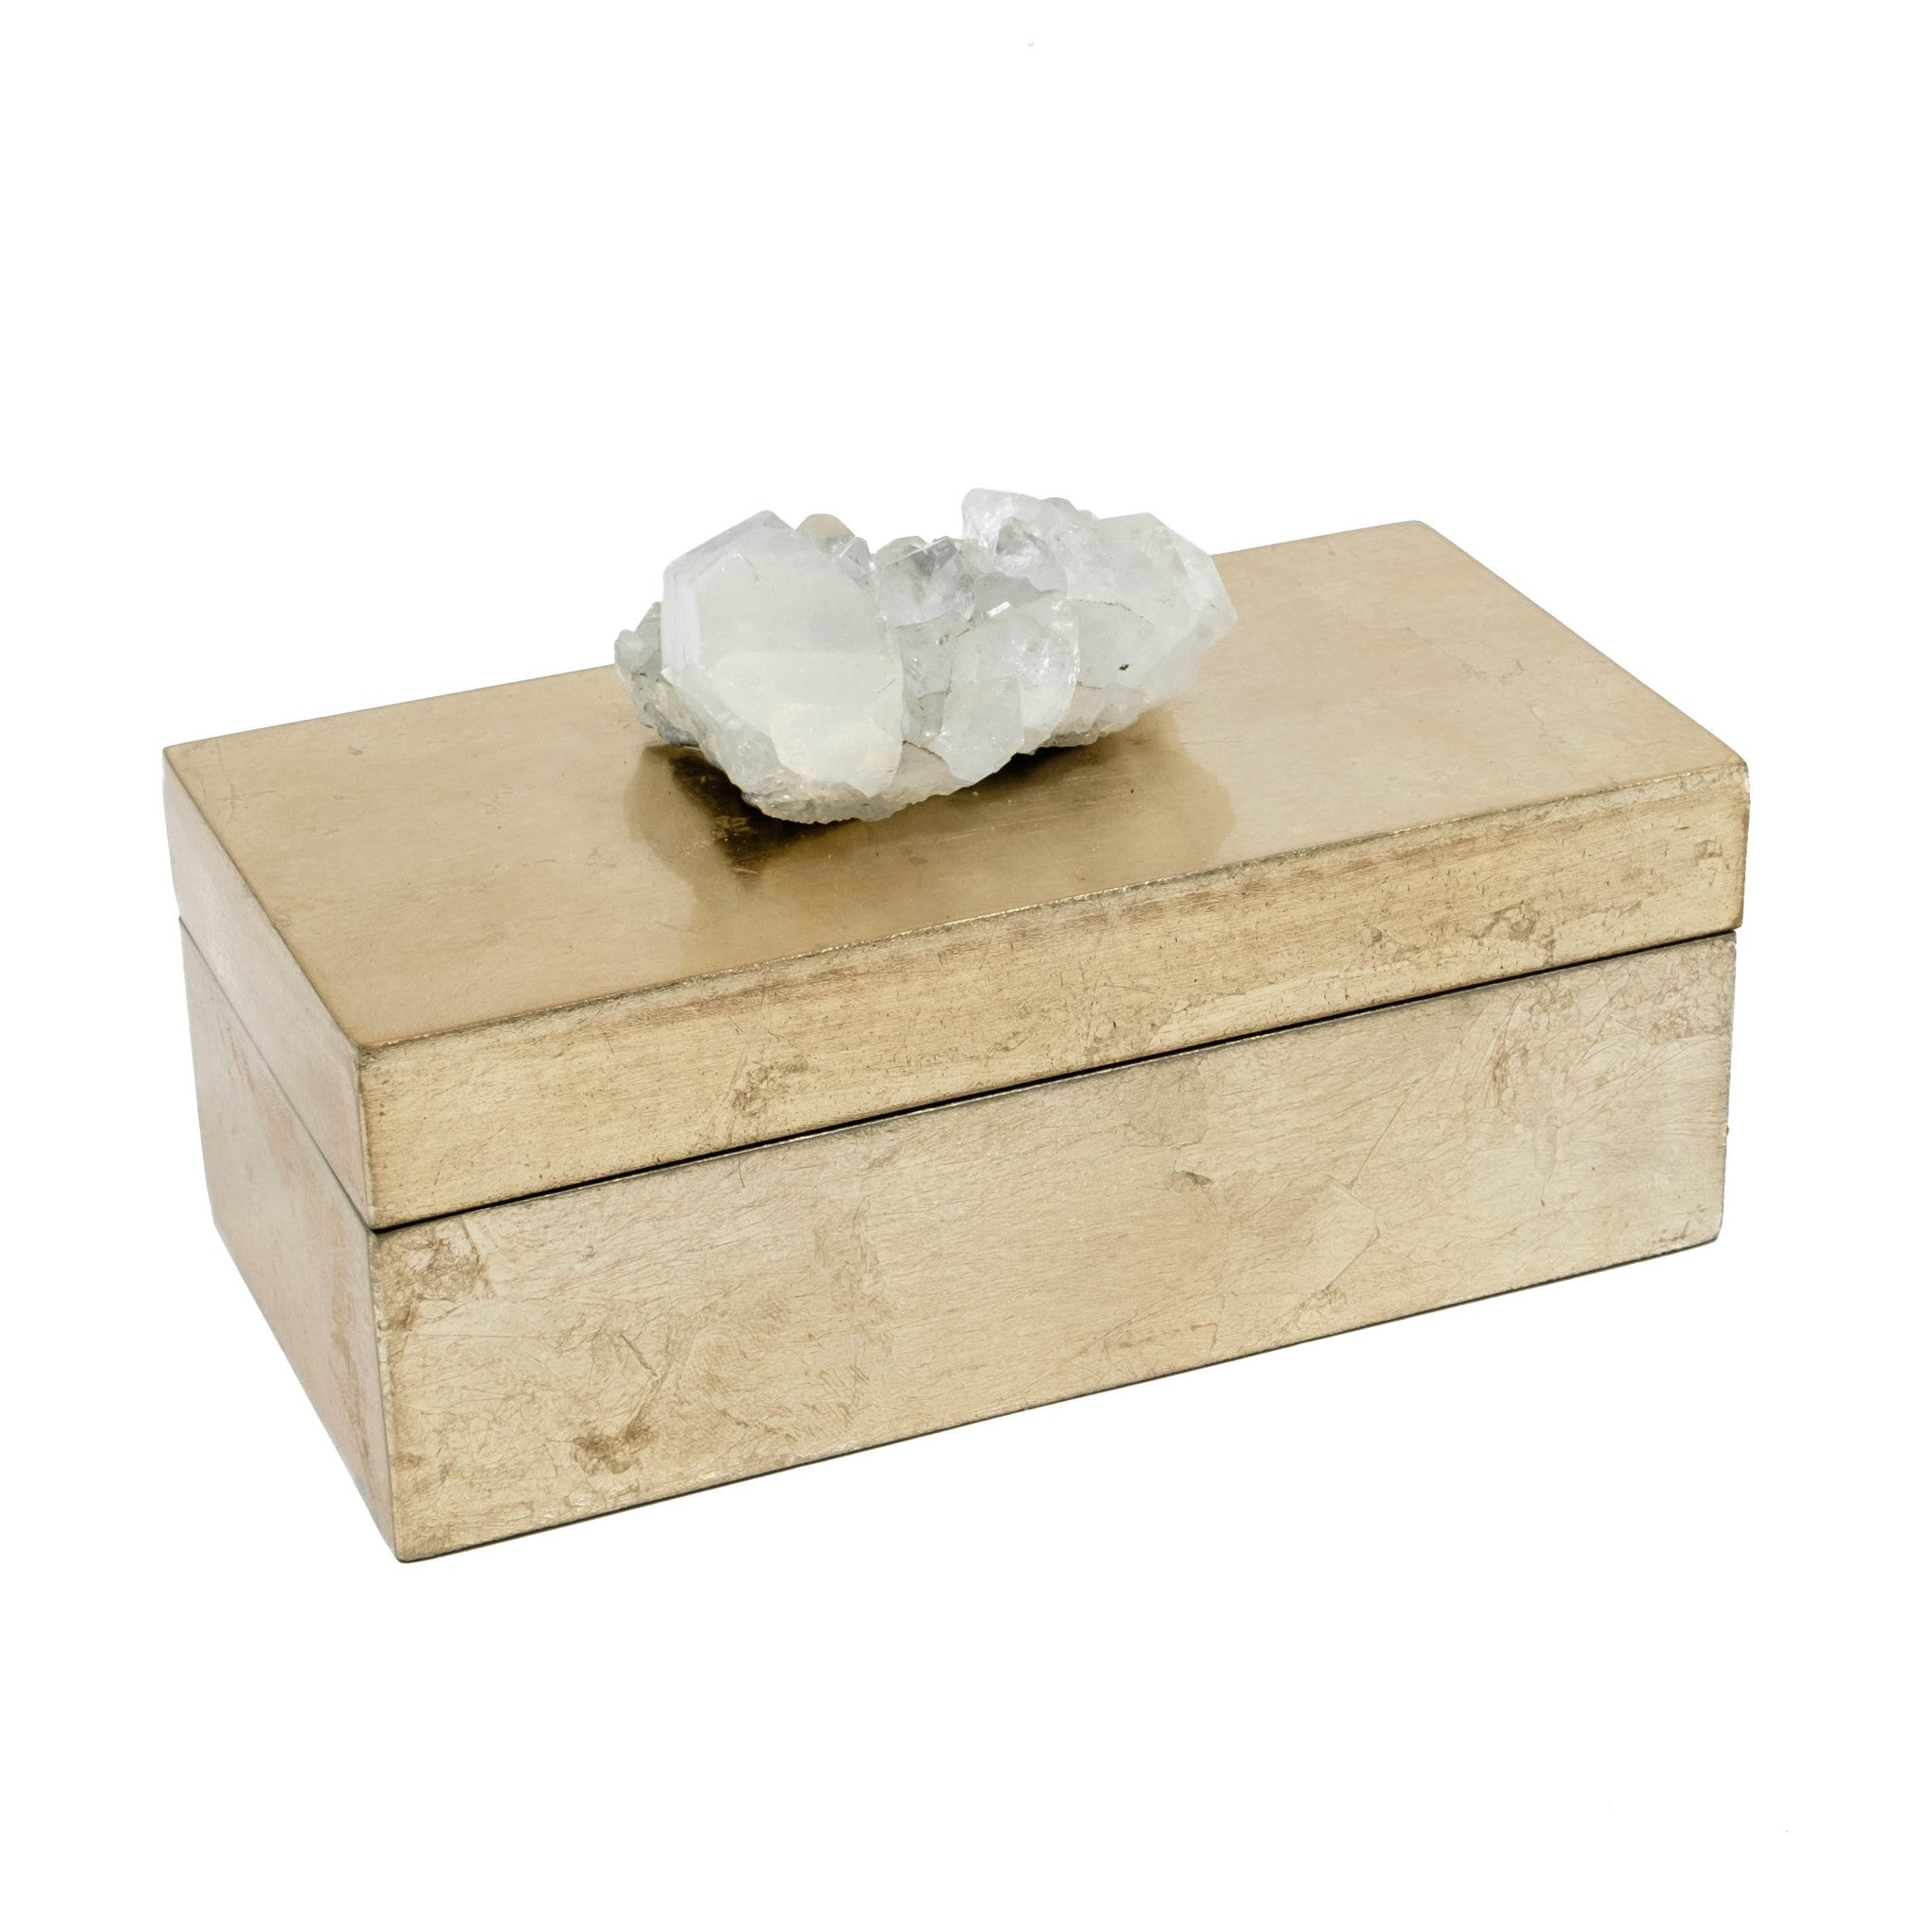 Brushed Gold Box with Apophyllite Crystal